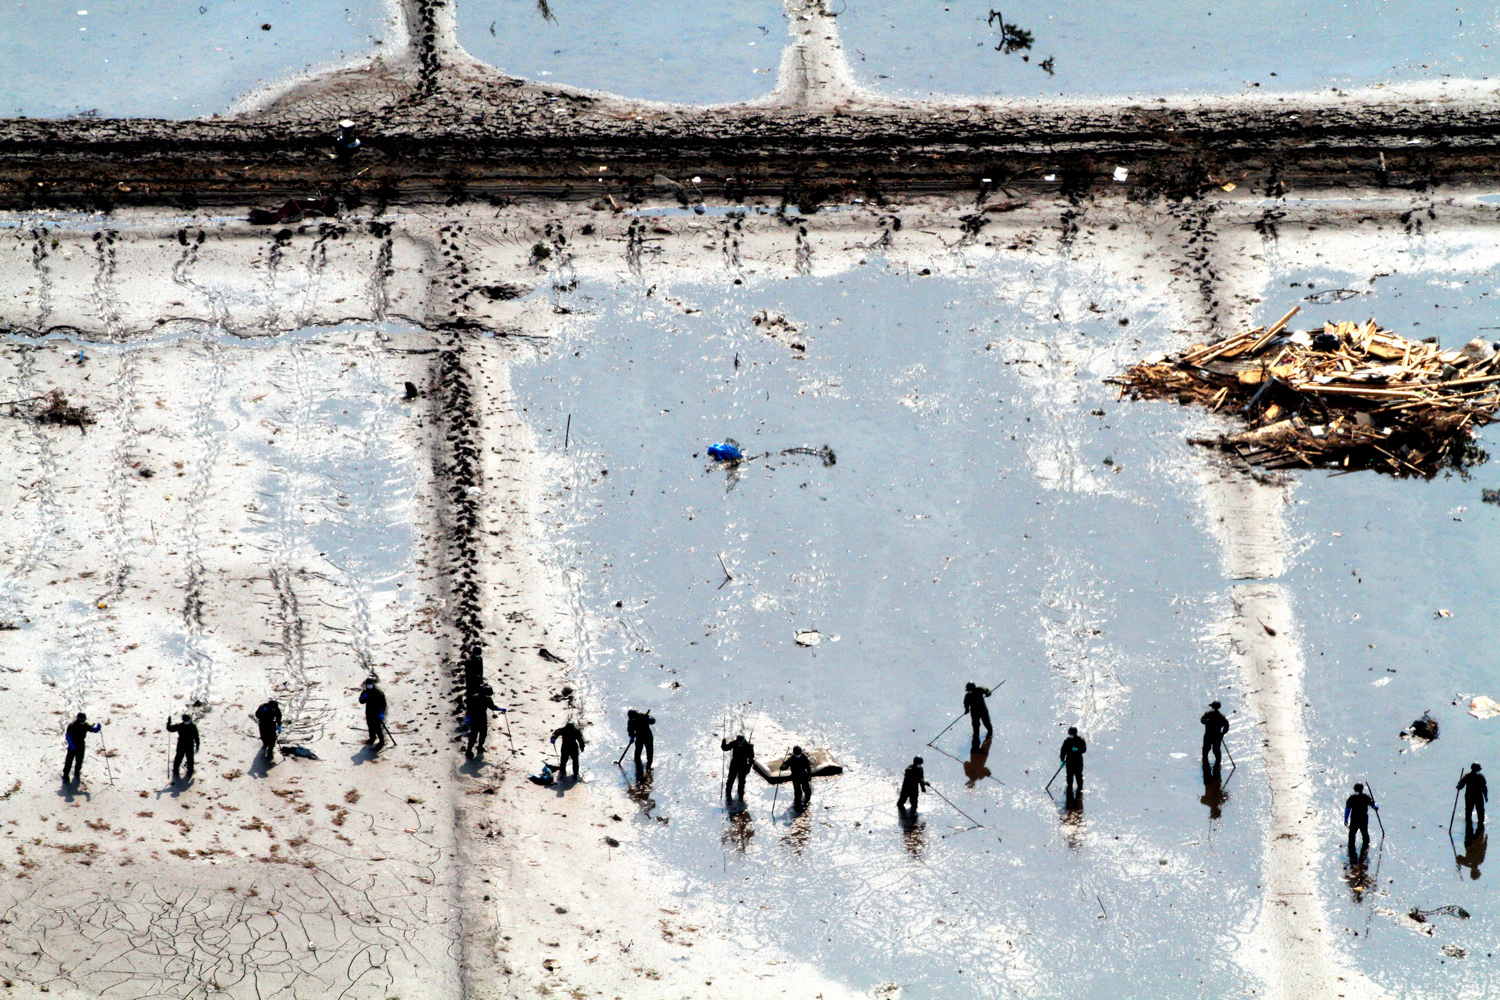 March 25, 2011. In this aerial image, members of Japan Ground Self-Defense Force continue post-tsunami rescue work on a muddy field in Shichigahama, Miyagi, Japan.